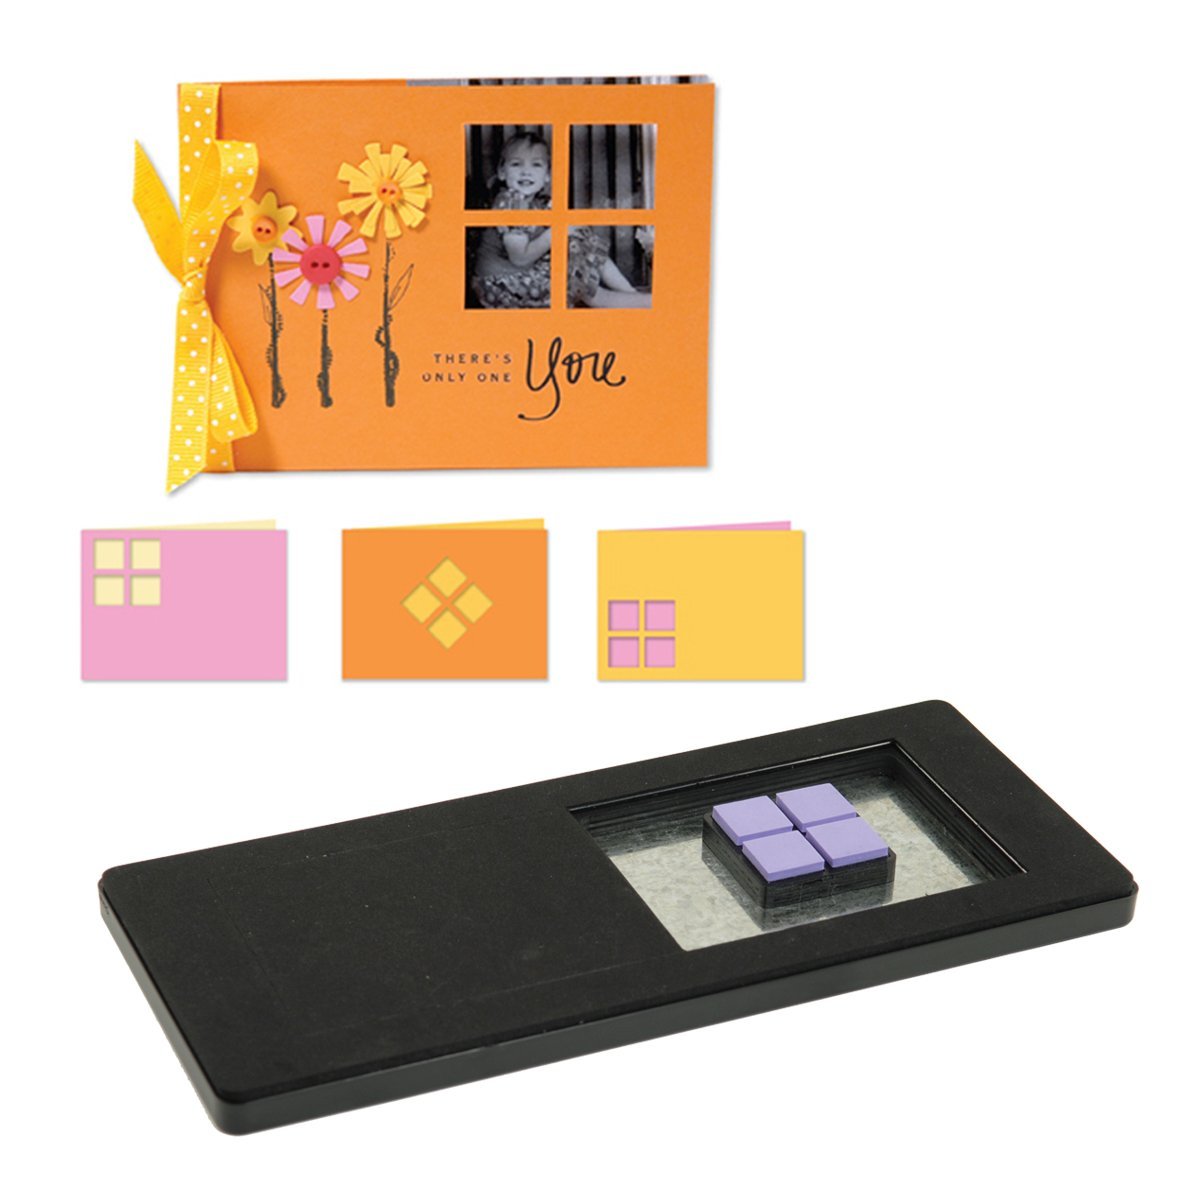 Ellison Sizzix Movers & Shapers Dies Kit #1-Card, Horizontal A2, Window Panes 4